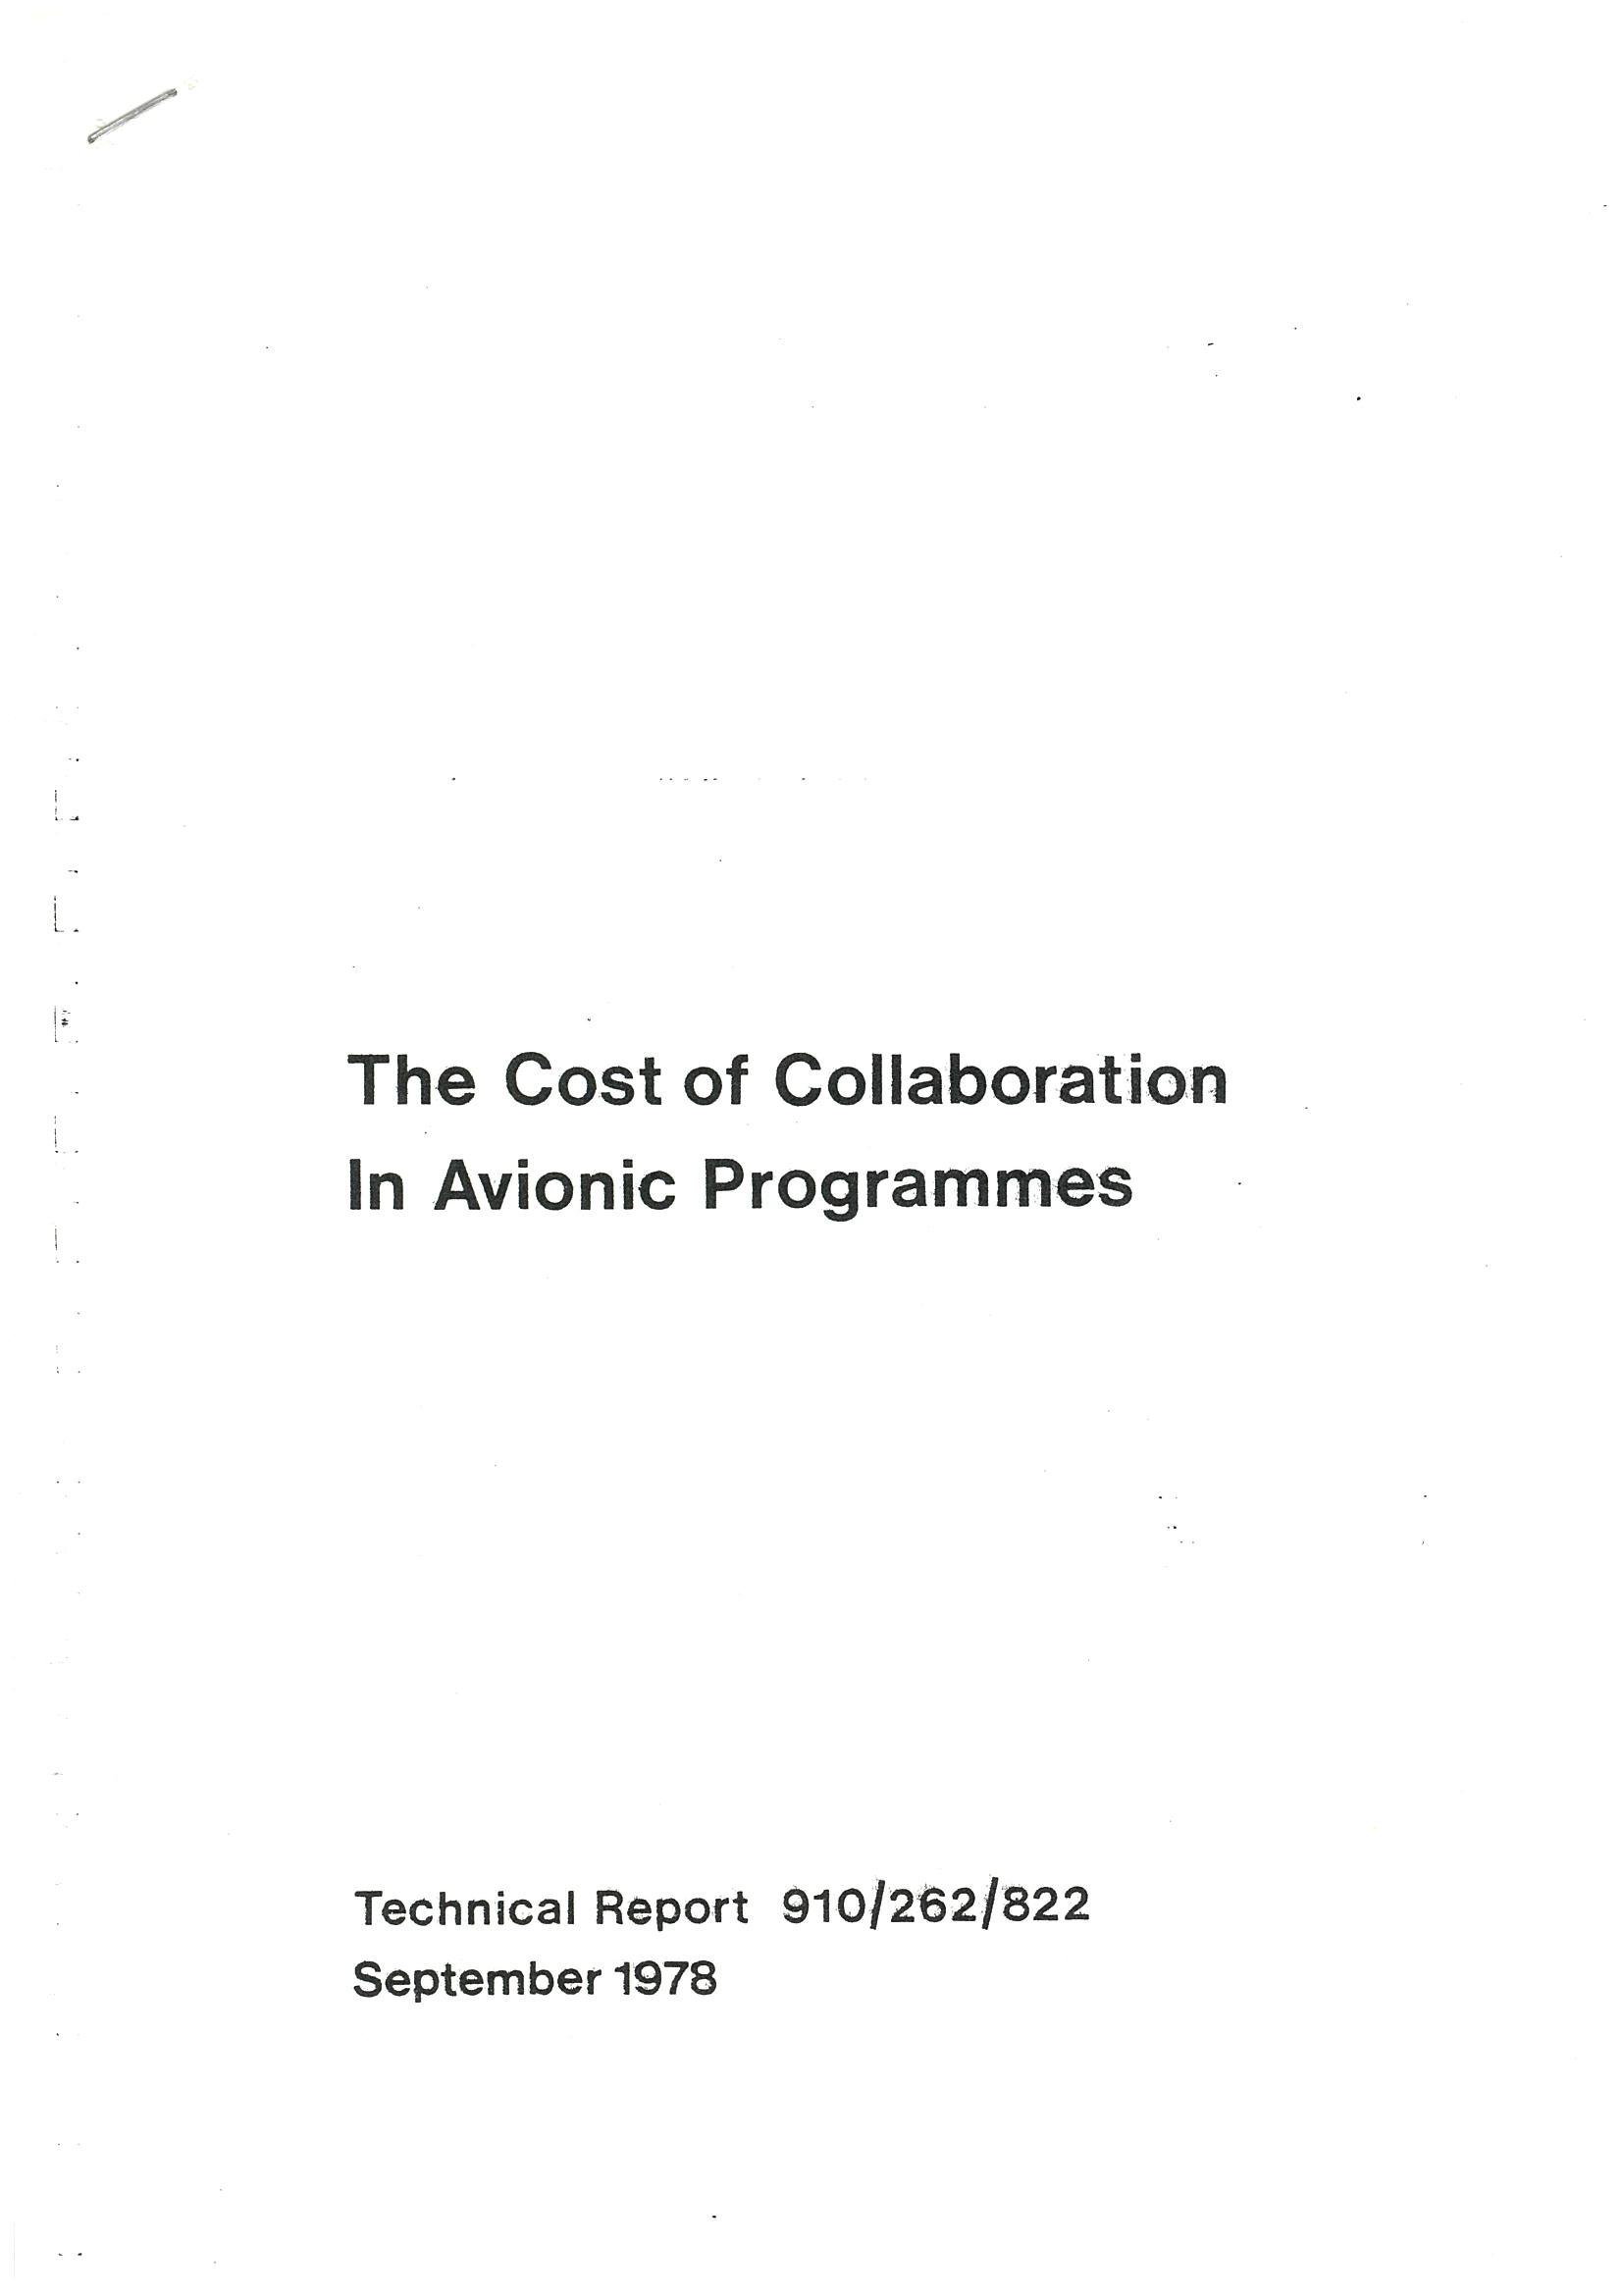 The Cost of Collaboration in Avionic programmmes.